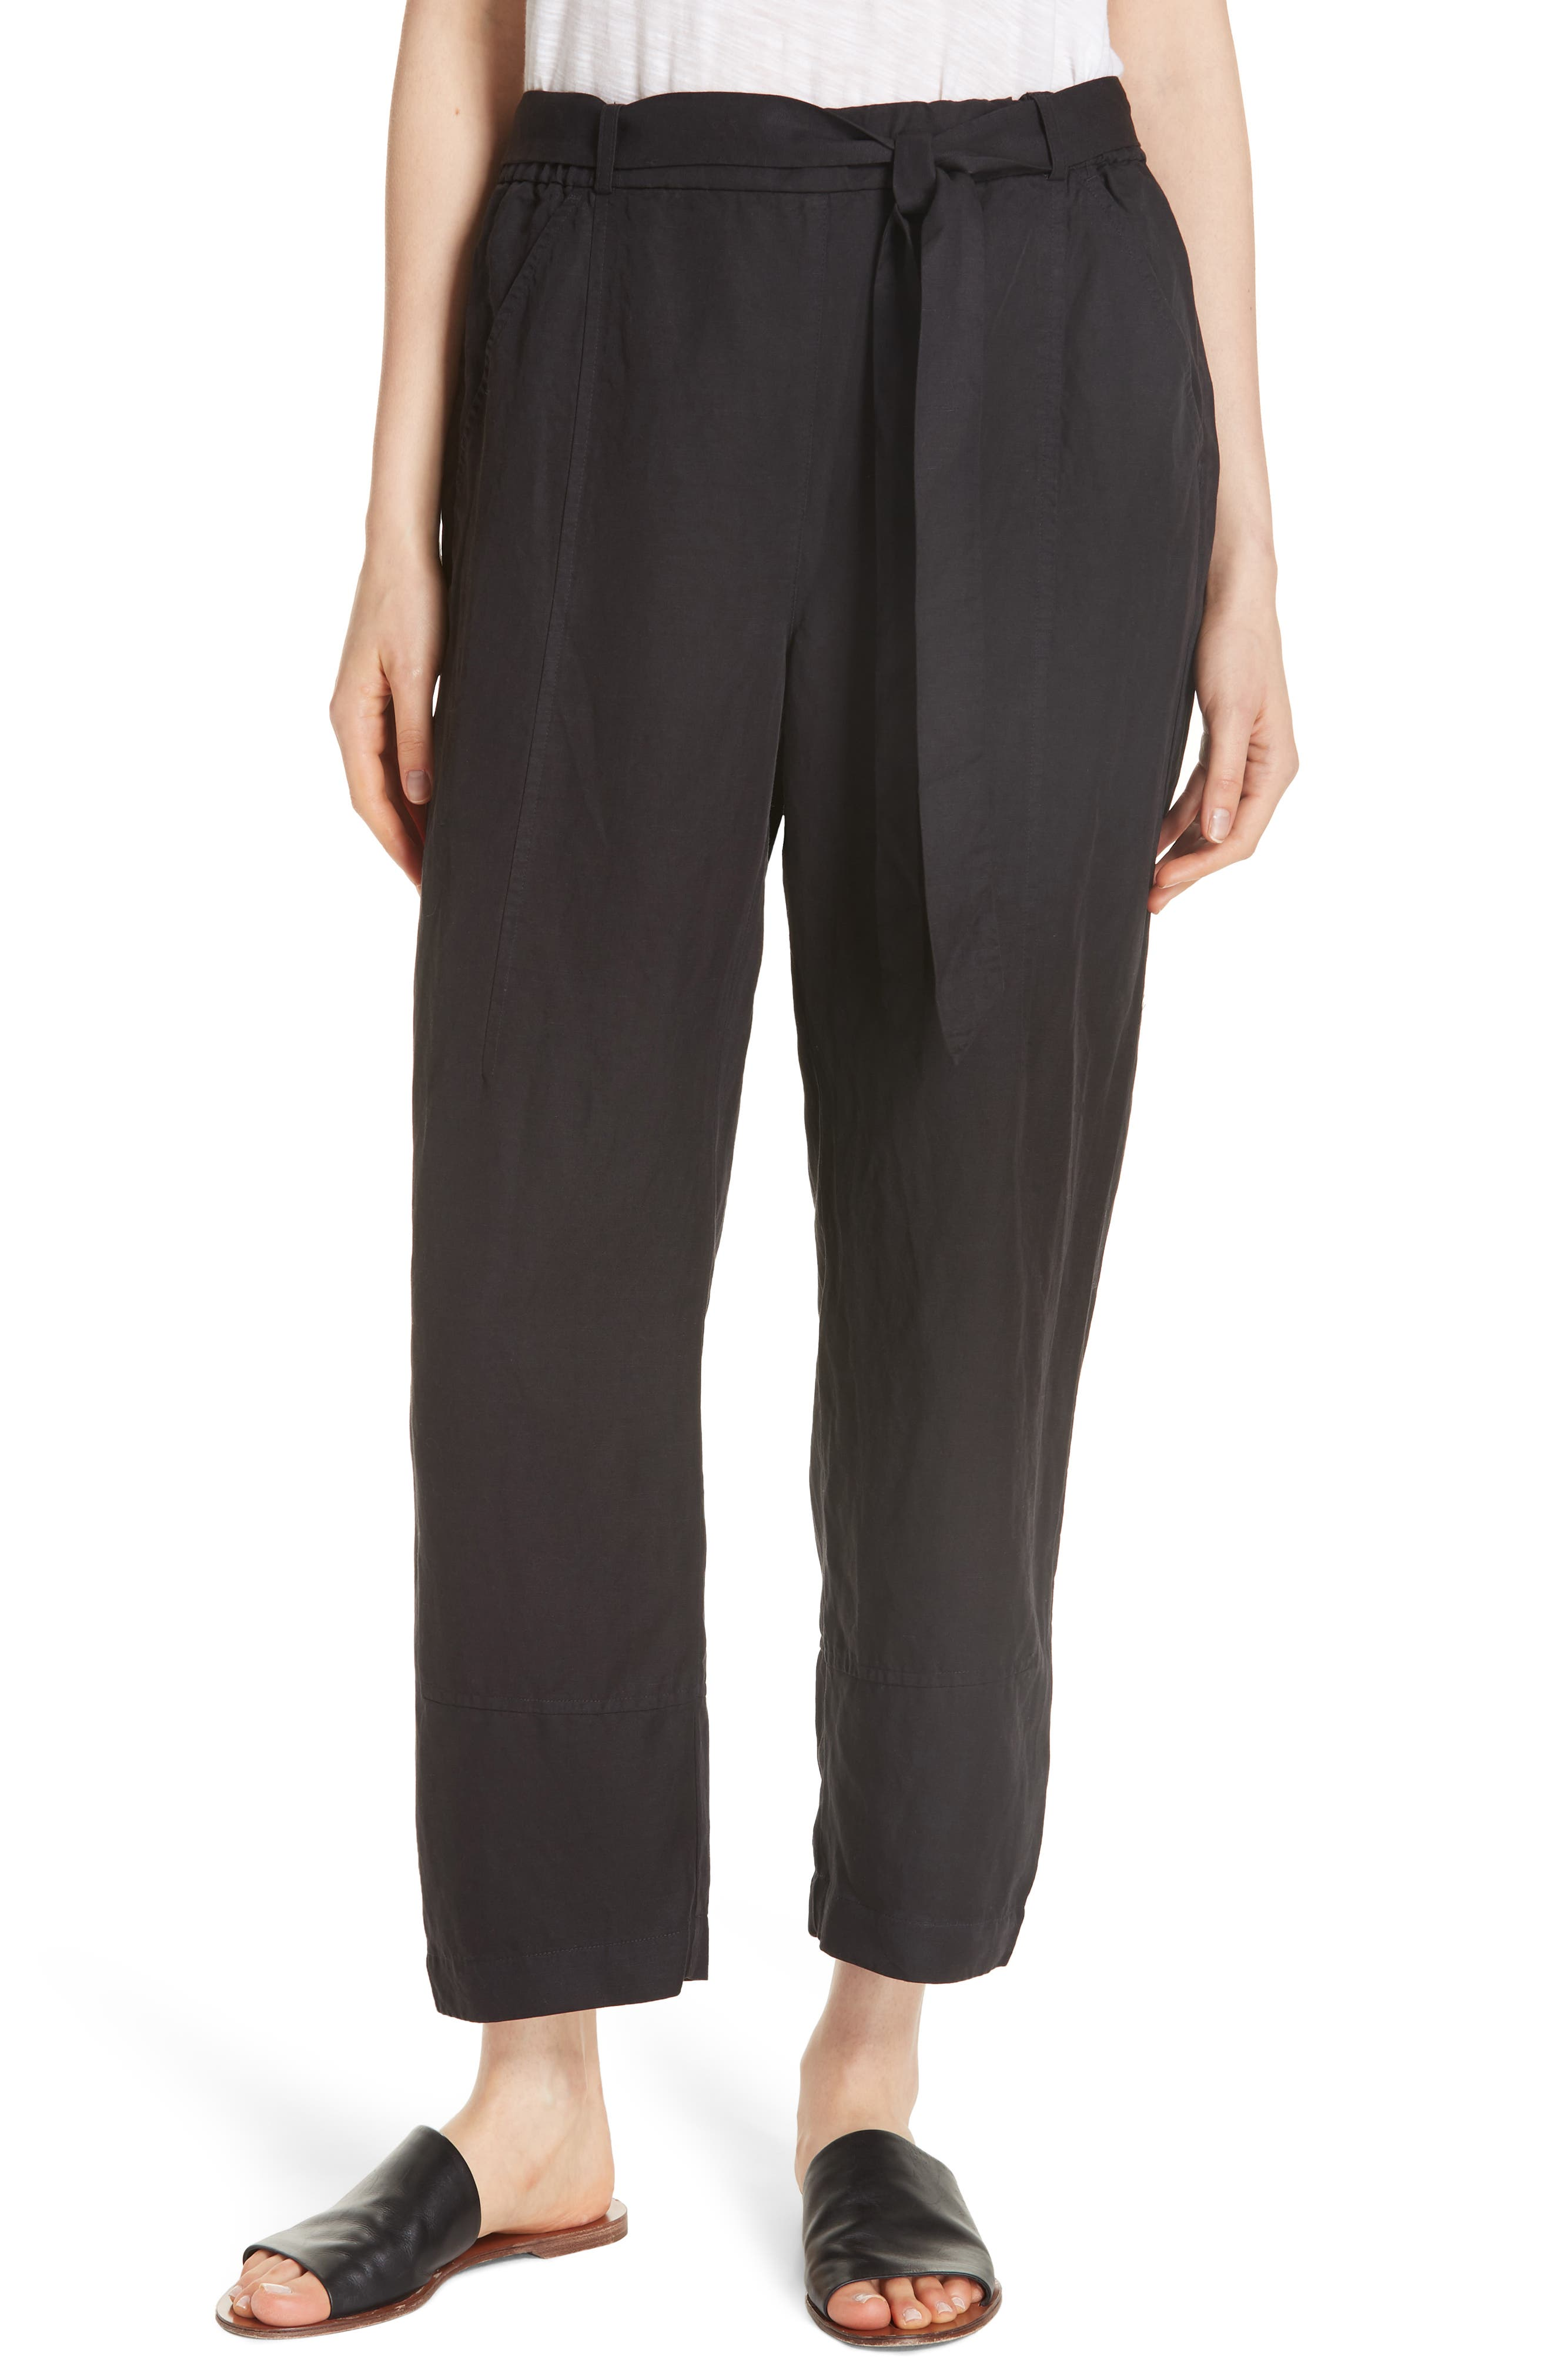 EILEEN FISHER, Lantern Twill Ankle Pants, Main thumbnail 1, color, 001